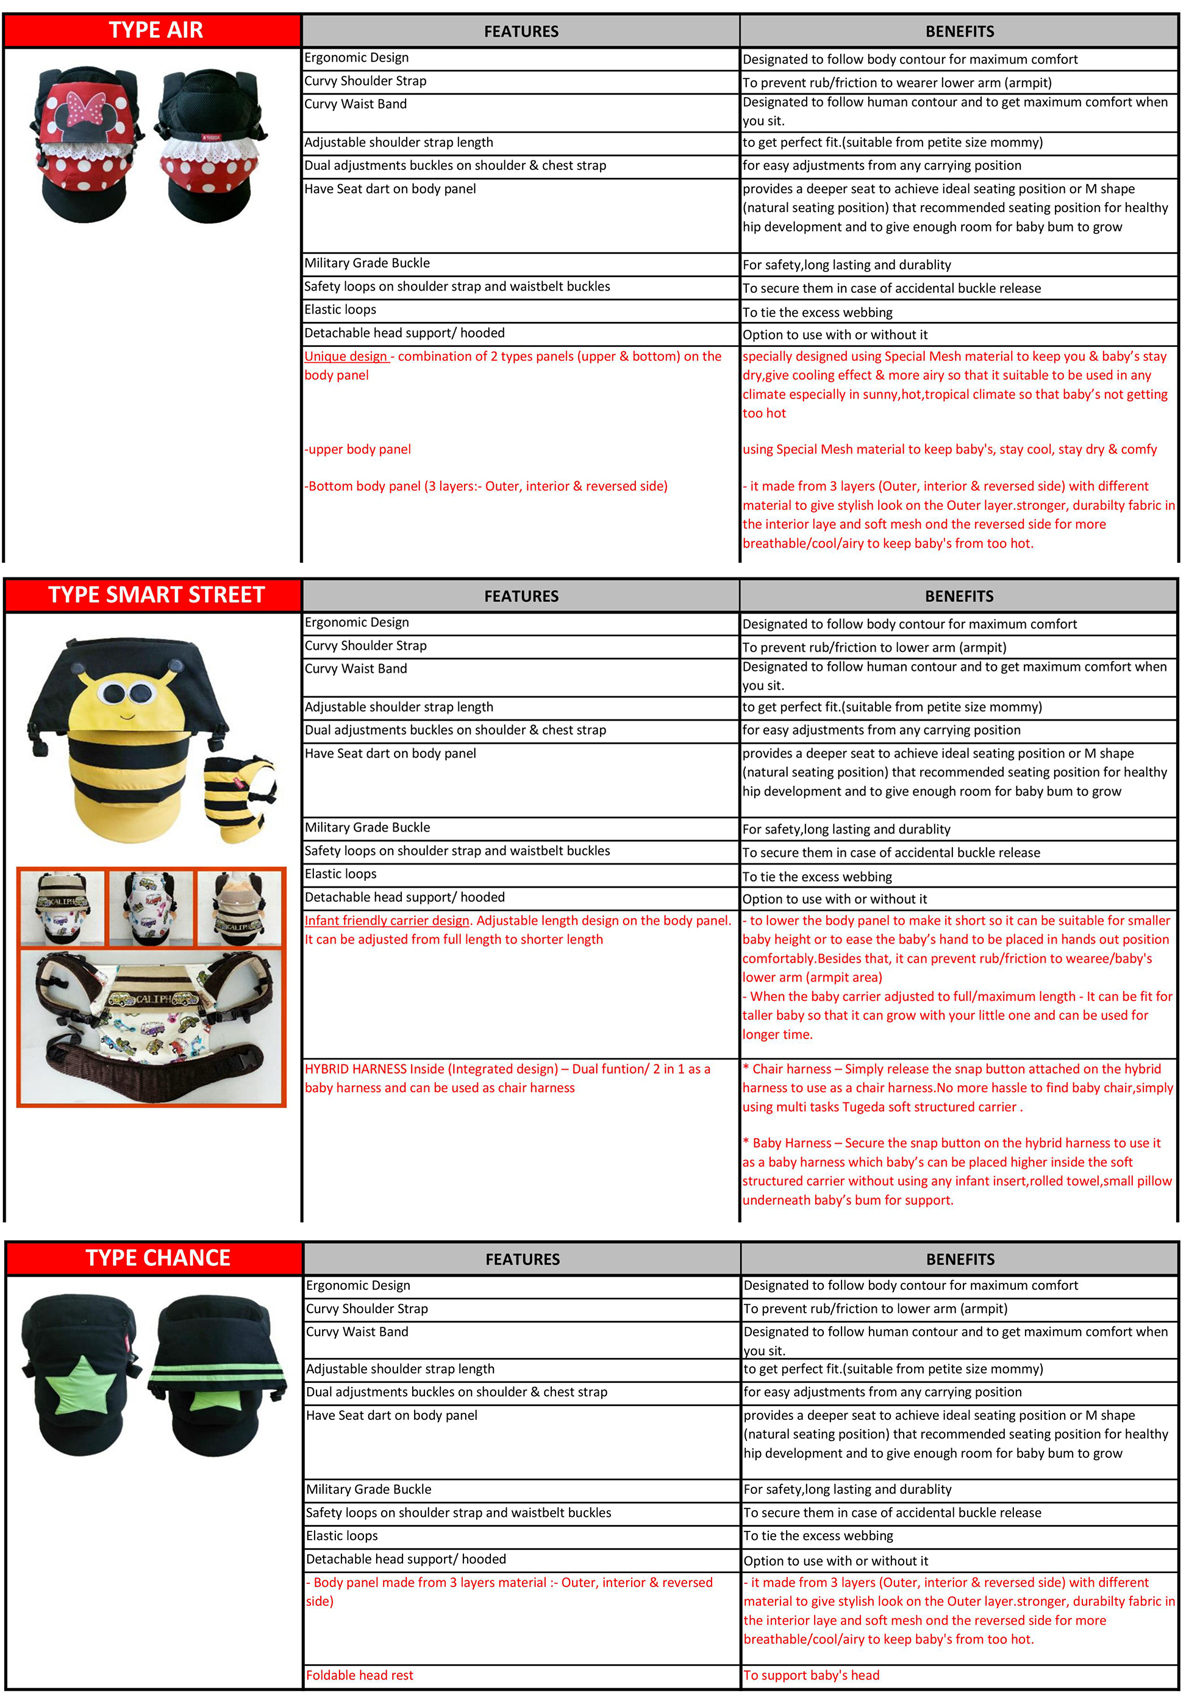 Tugeda Carrier comparison chart 2